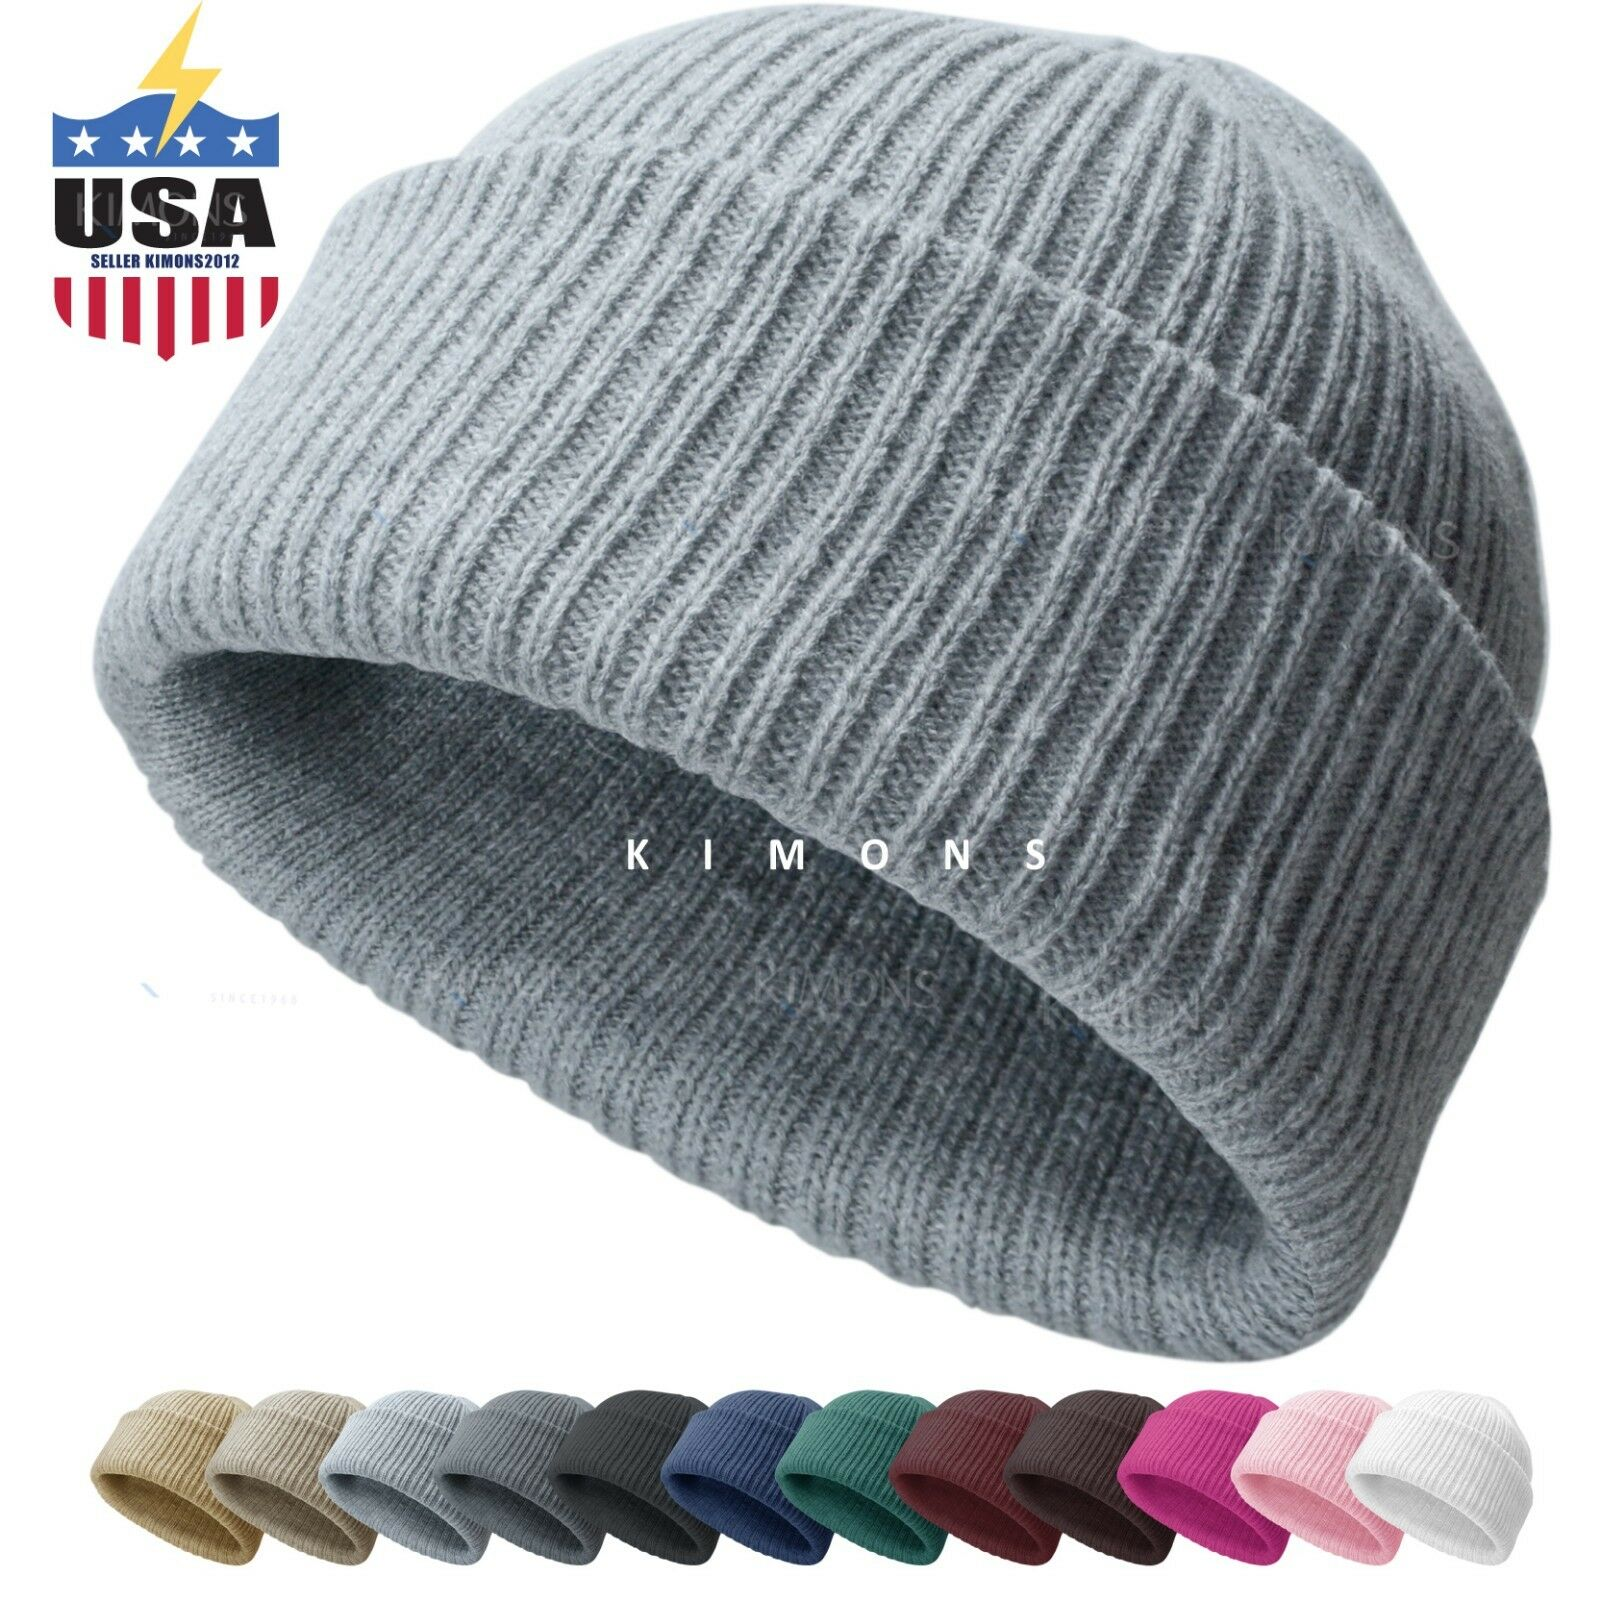 5bb5fe592954cb ... Warm Solid Color Winter Ribbed Thick Beanie Plain Knit Cuff Ski Cap  Skull Hat Warm Solid Color Winter Ribbed Thick Beanie Plain Knit Cuff Ski  Cap Skull ...